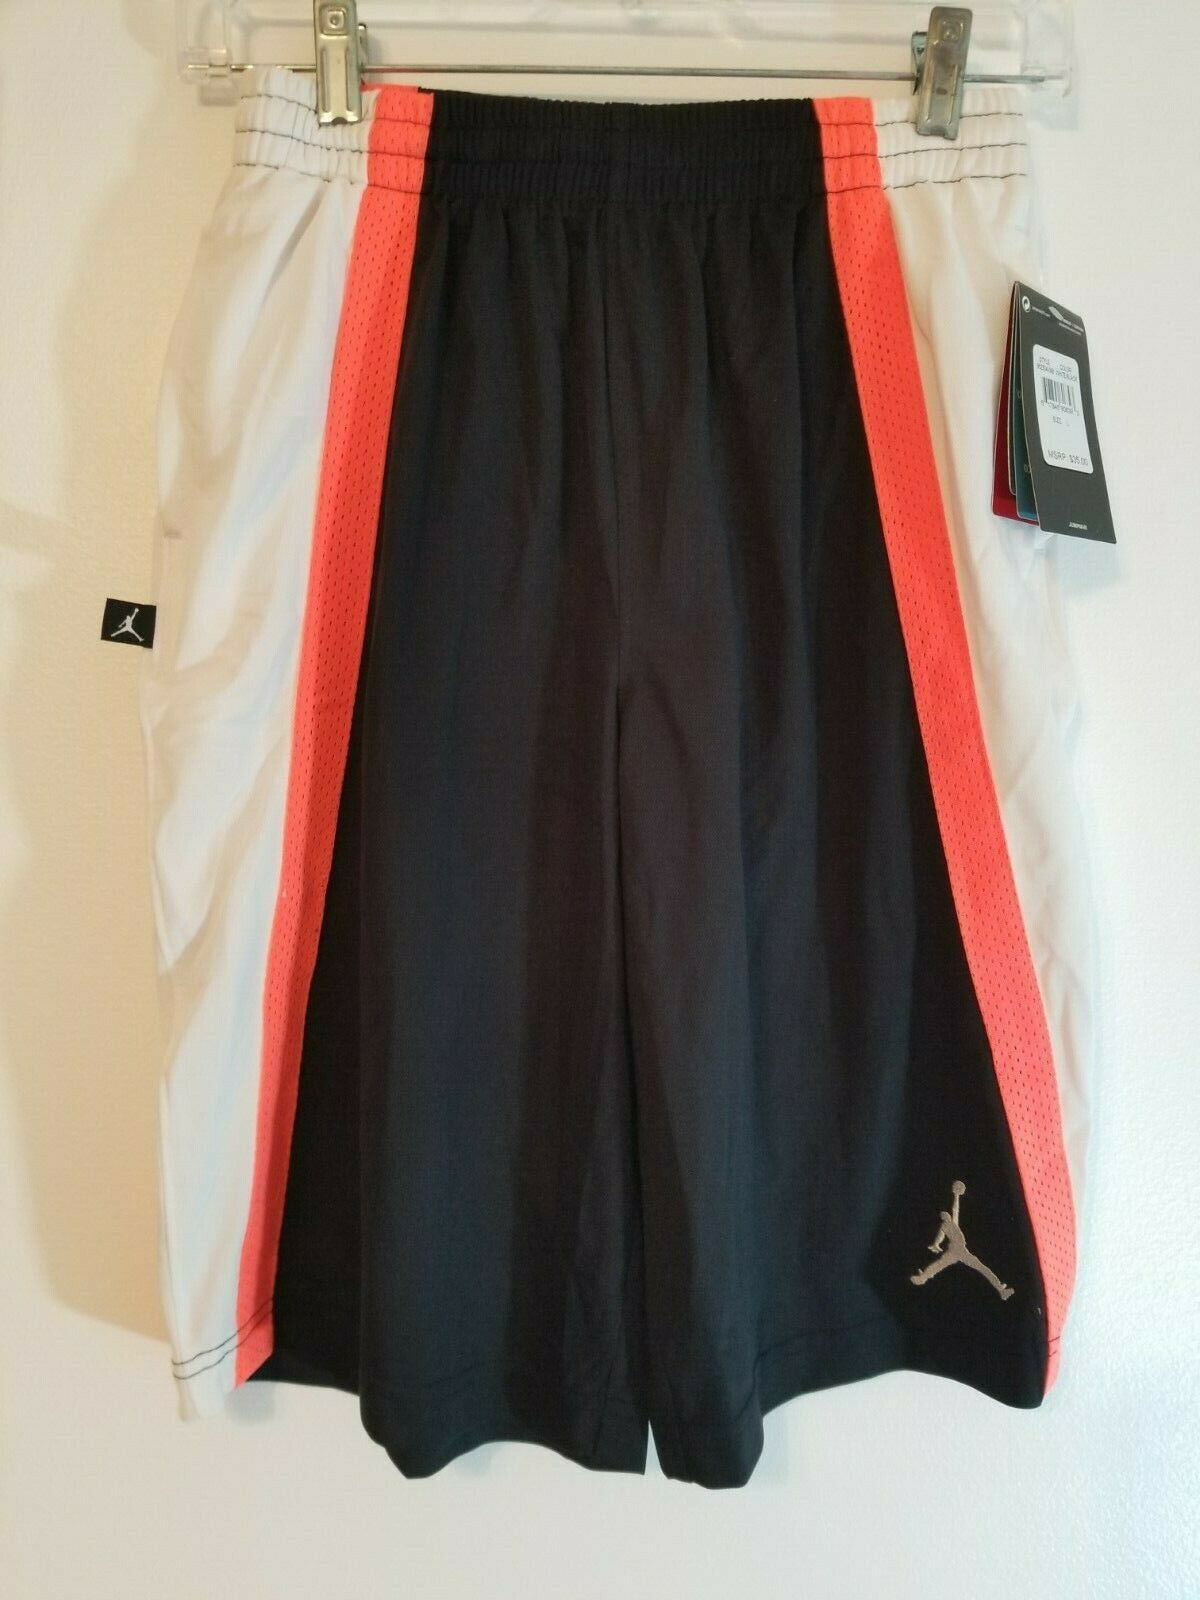 Primary image for Nike Air Jordan Baseline Youth Dri Fit Shorts White/Black Large $35 NEW Jumpman